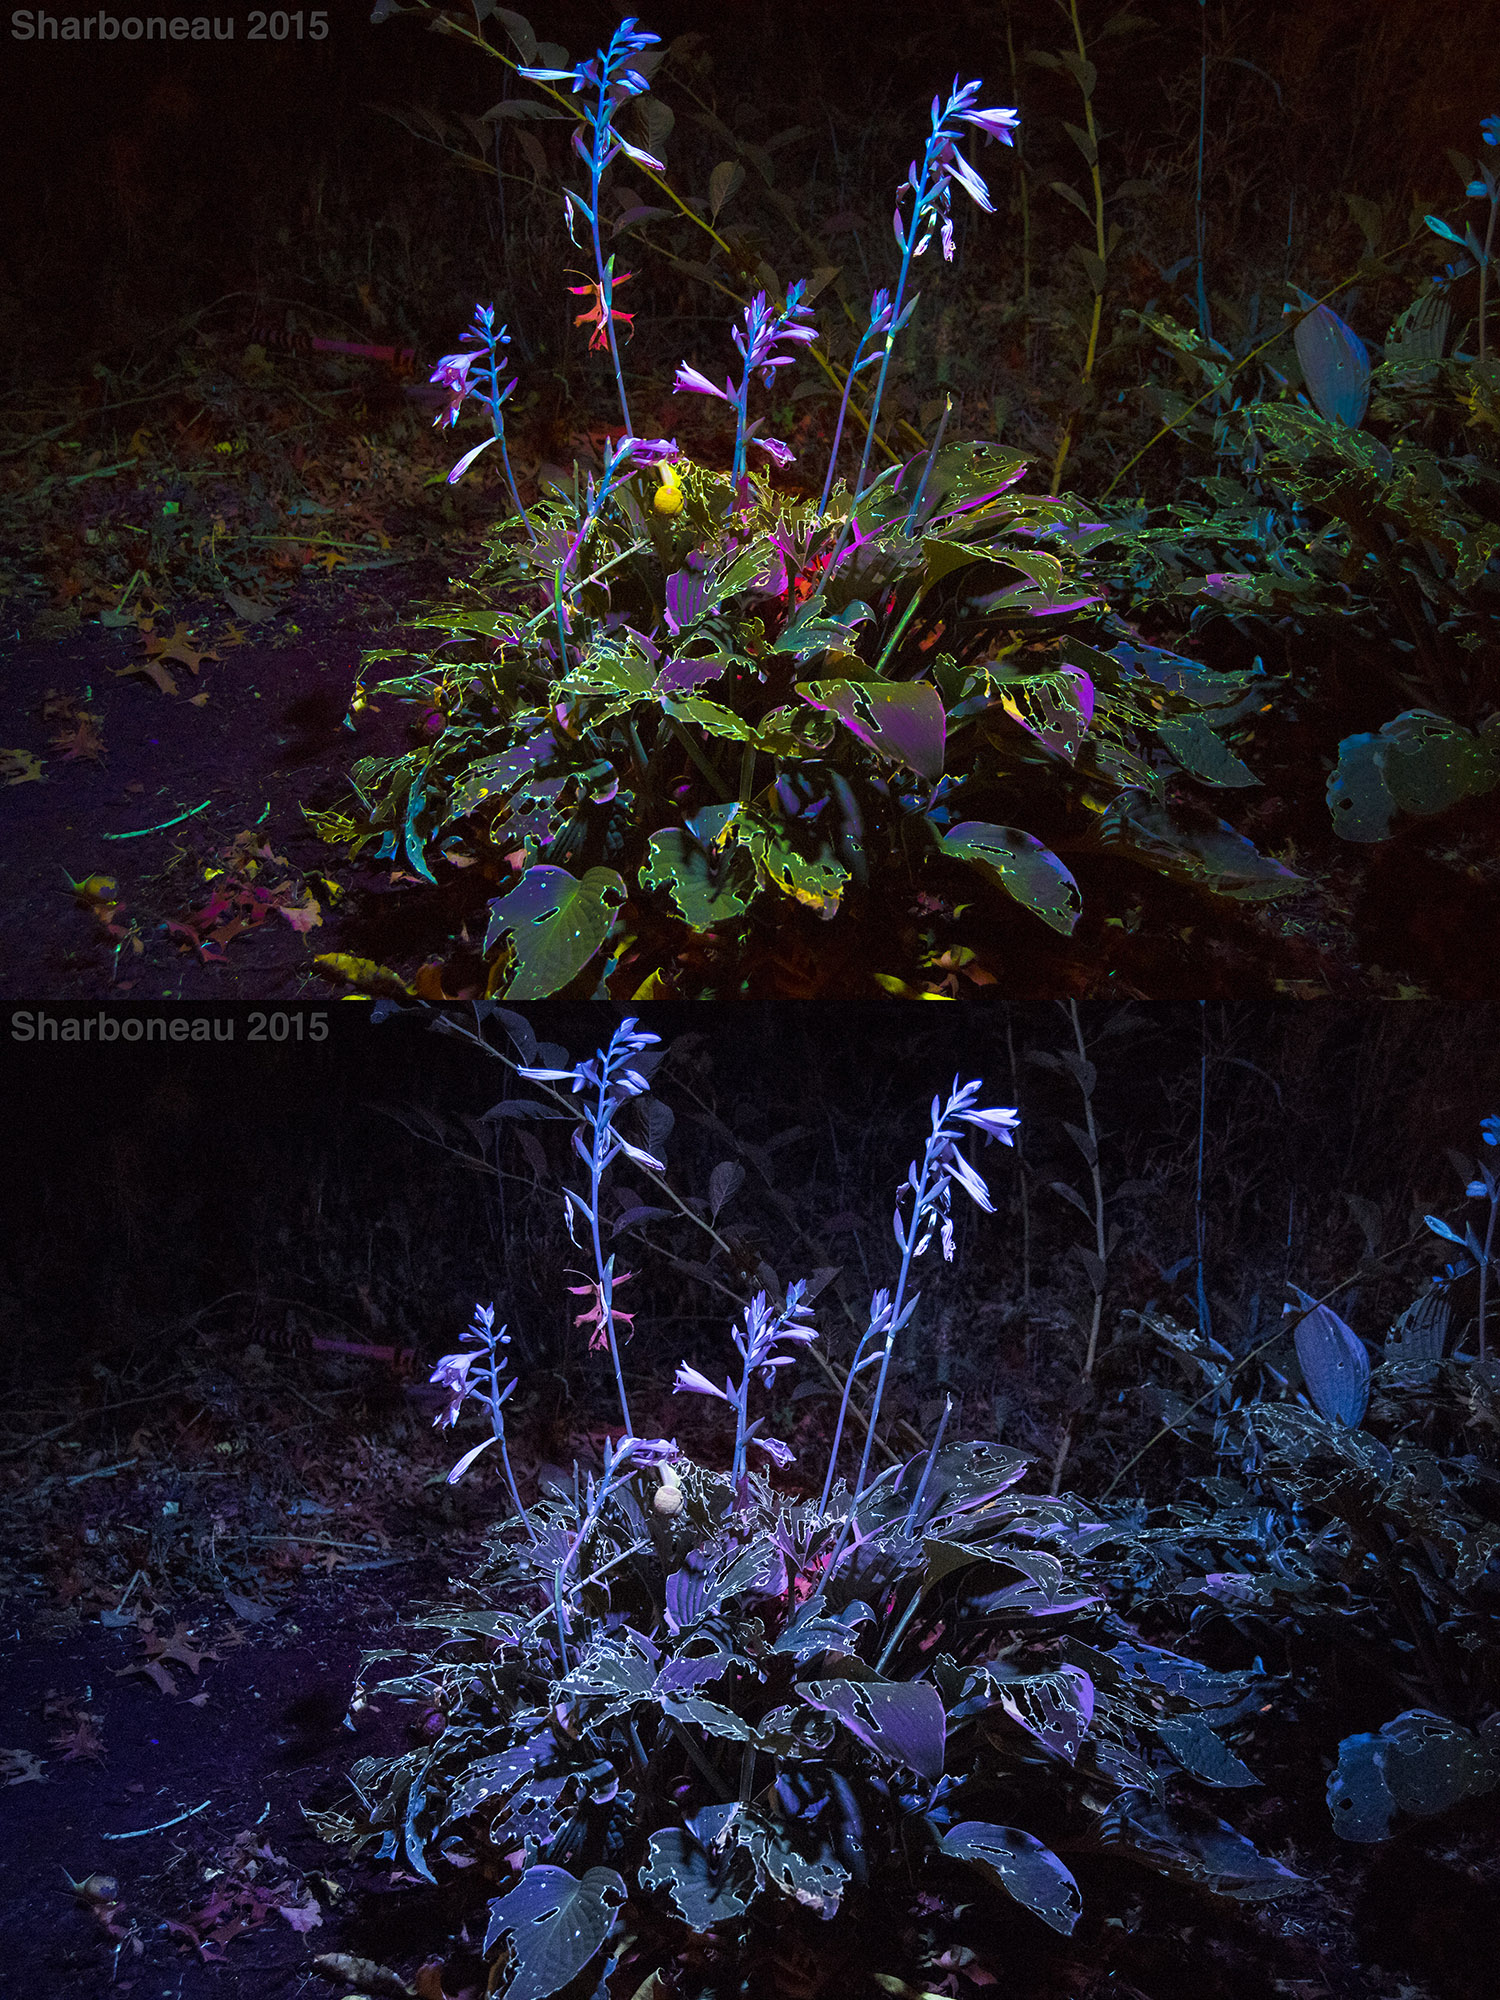 Here are two photographs showing two different white balance standards I use. The top image has a warmer custom white balance (~10,000K), while the bottom image has the white balance set to Daylight (~5,00K).